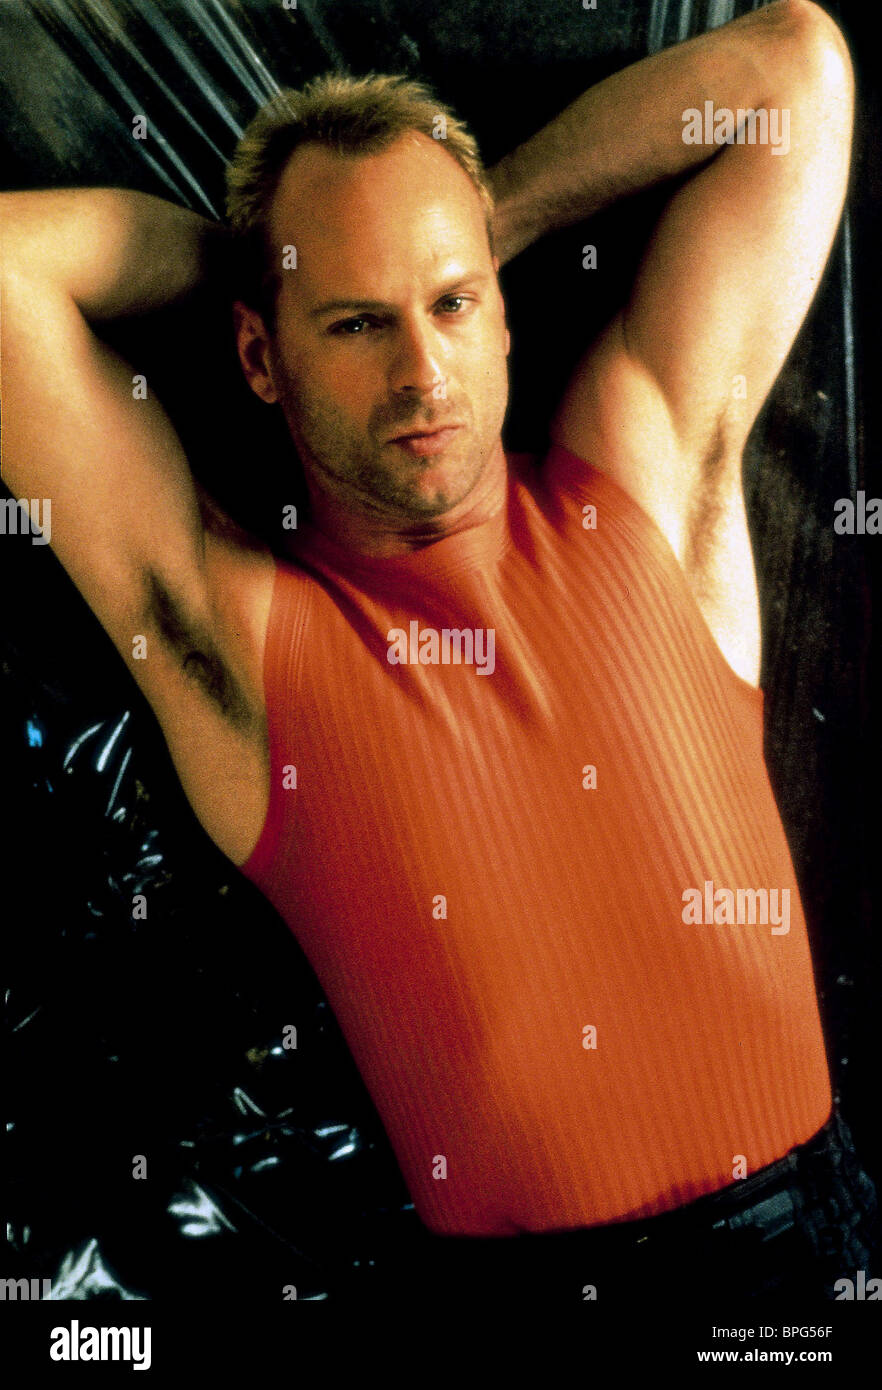 Bruce Willis The Fifth Element 1997 Stock Photo Alamy